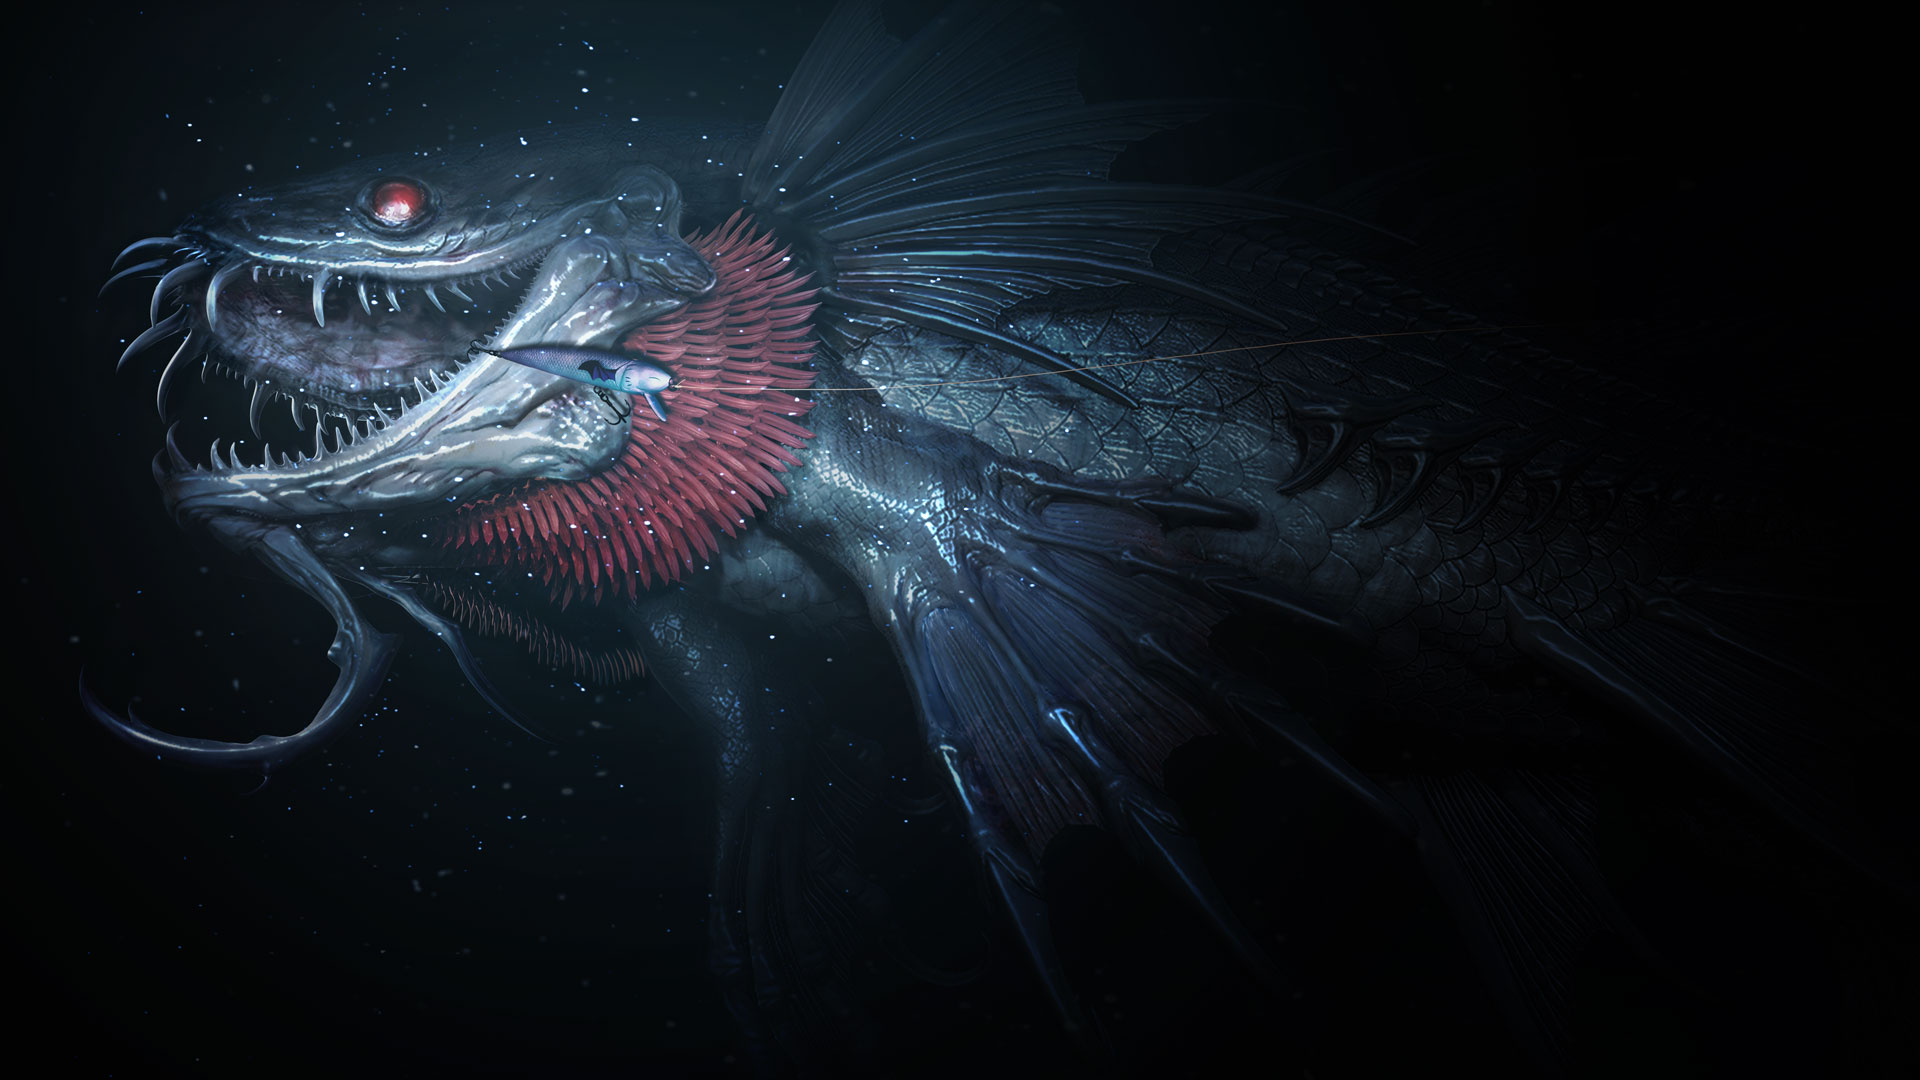 Image monster of the deep ffxv final fantasy for Final fantasy 15 fishing gear